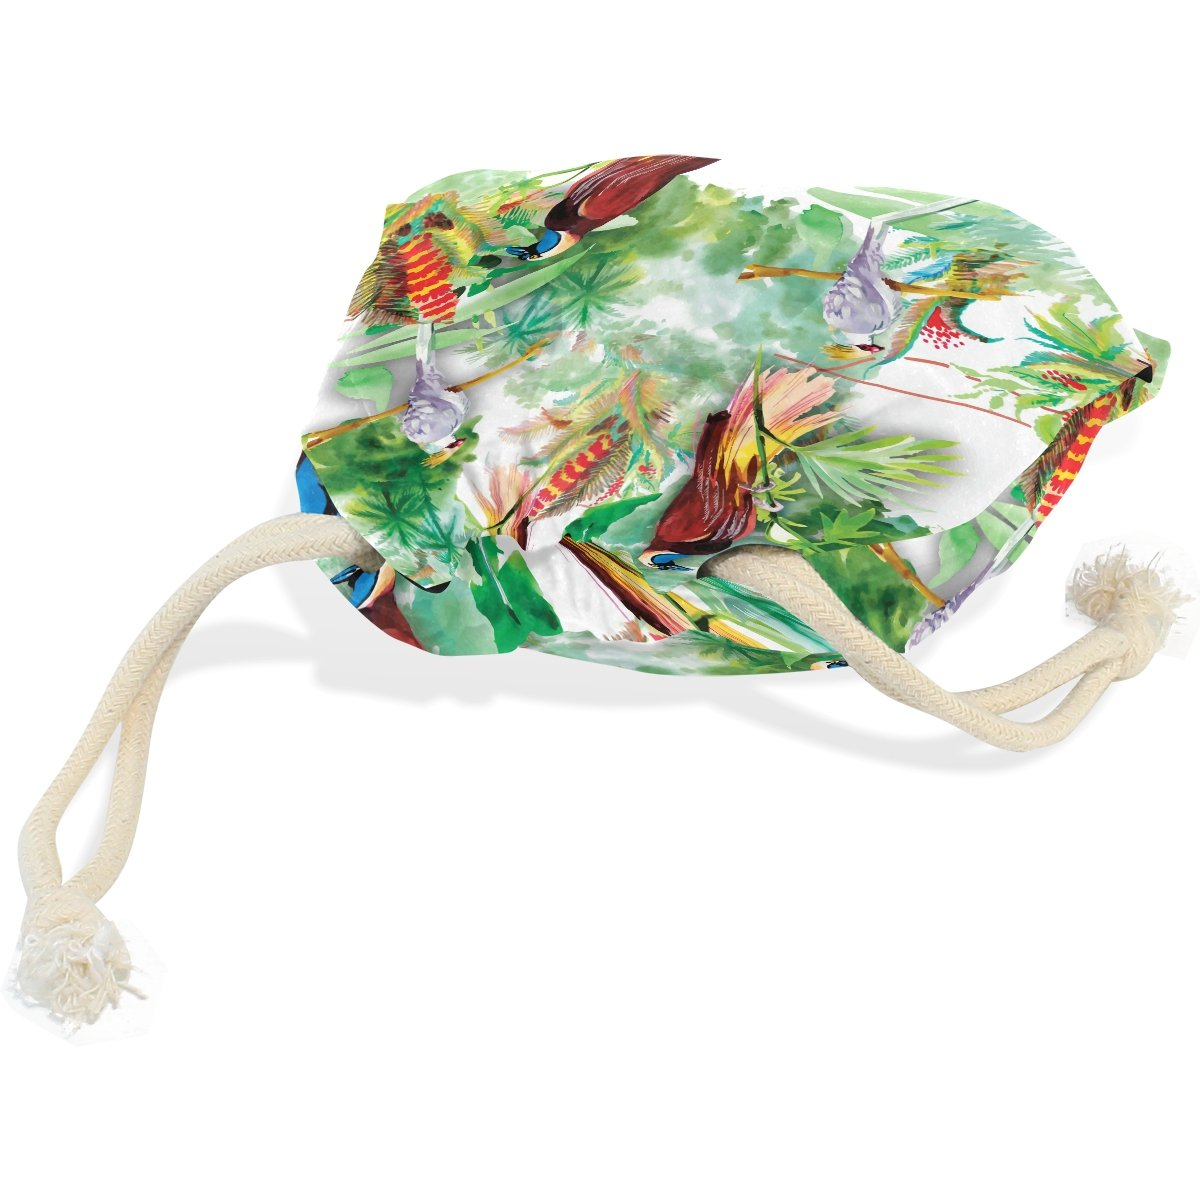 Dragon Sword Watercolor Wild Exotic Birds Flowers Gift Bags Jewelry Drawstring Pouches for Wedding Party, 6x8 Inch by Dragon Sword (Image #3)